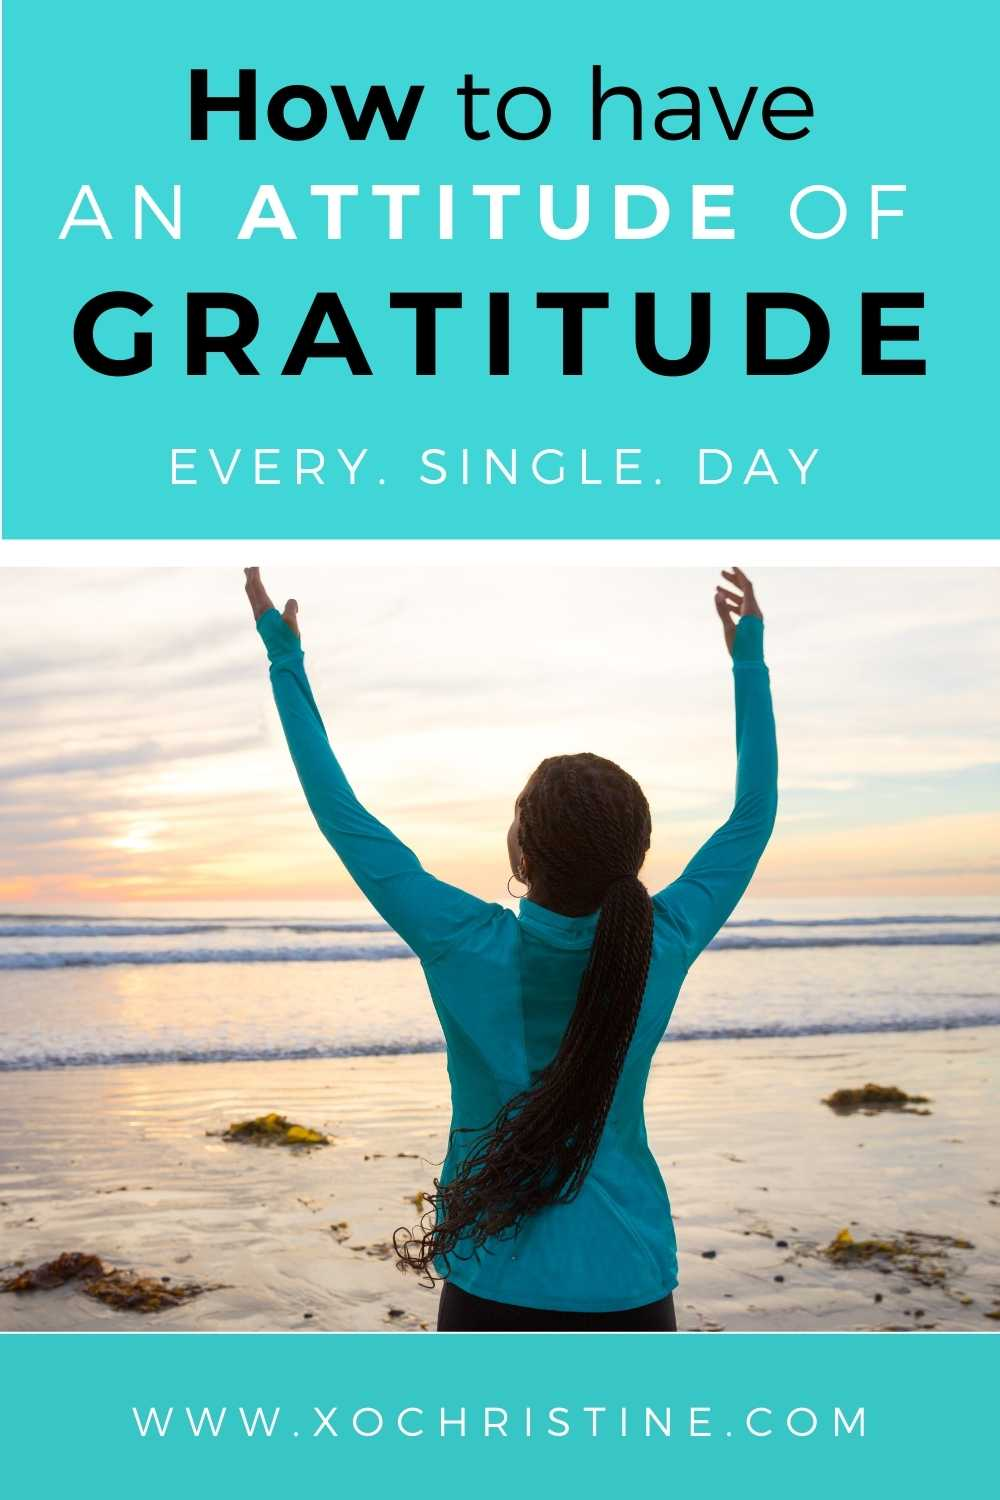 How to practice gratitude every day (a step-by-step guide) 2021